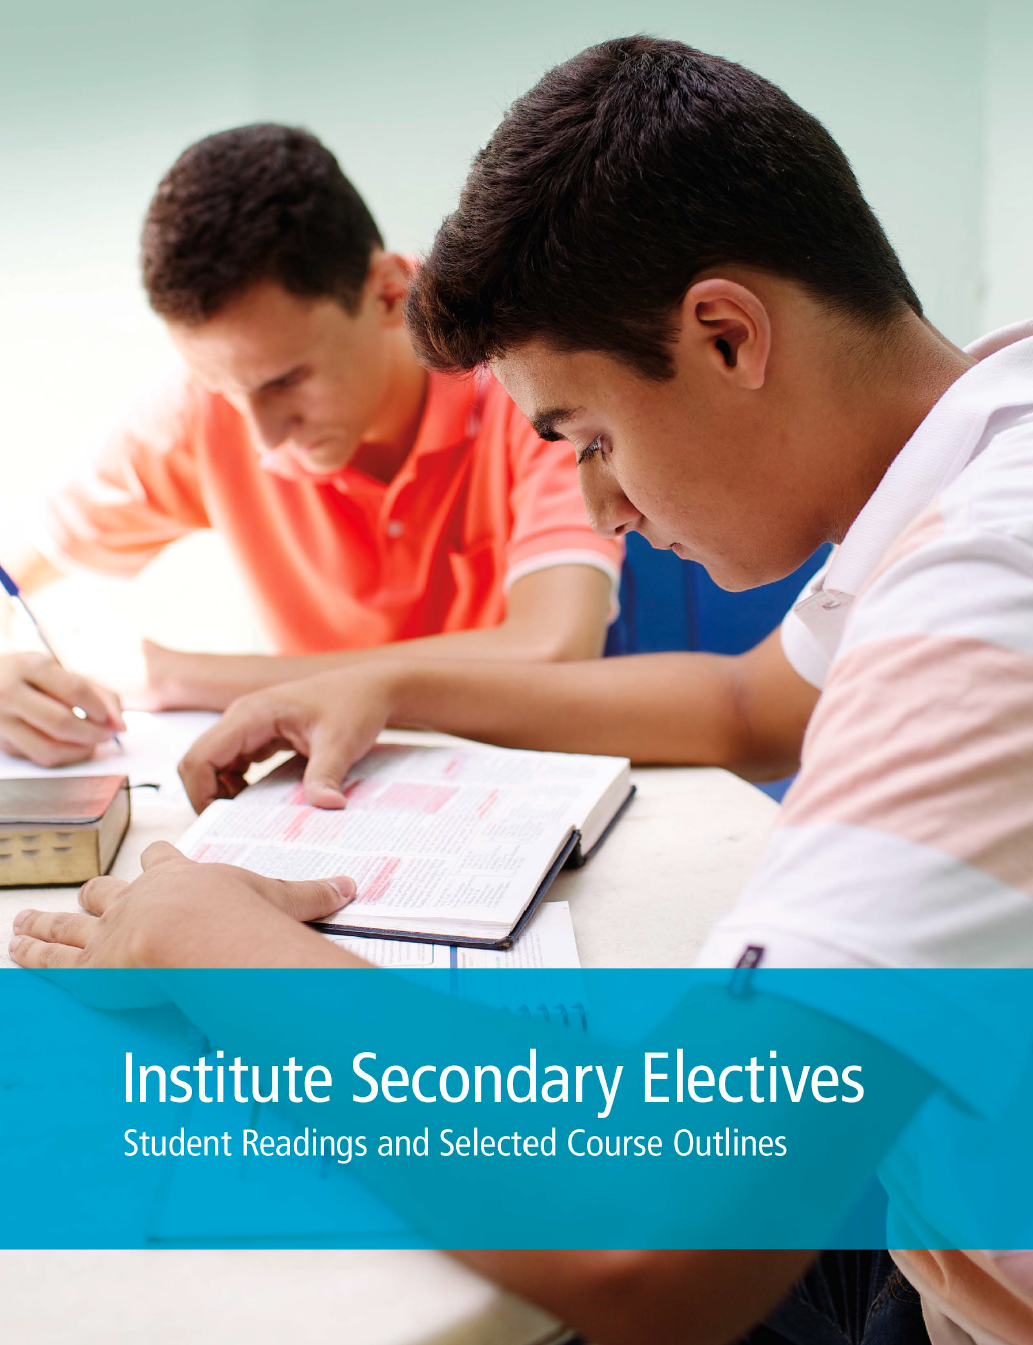 Institute Secondary Electives Student Readings